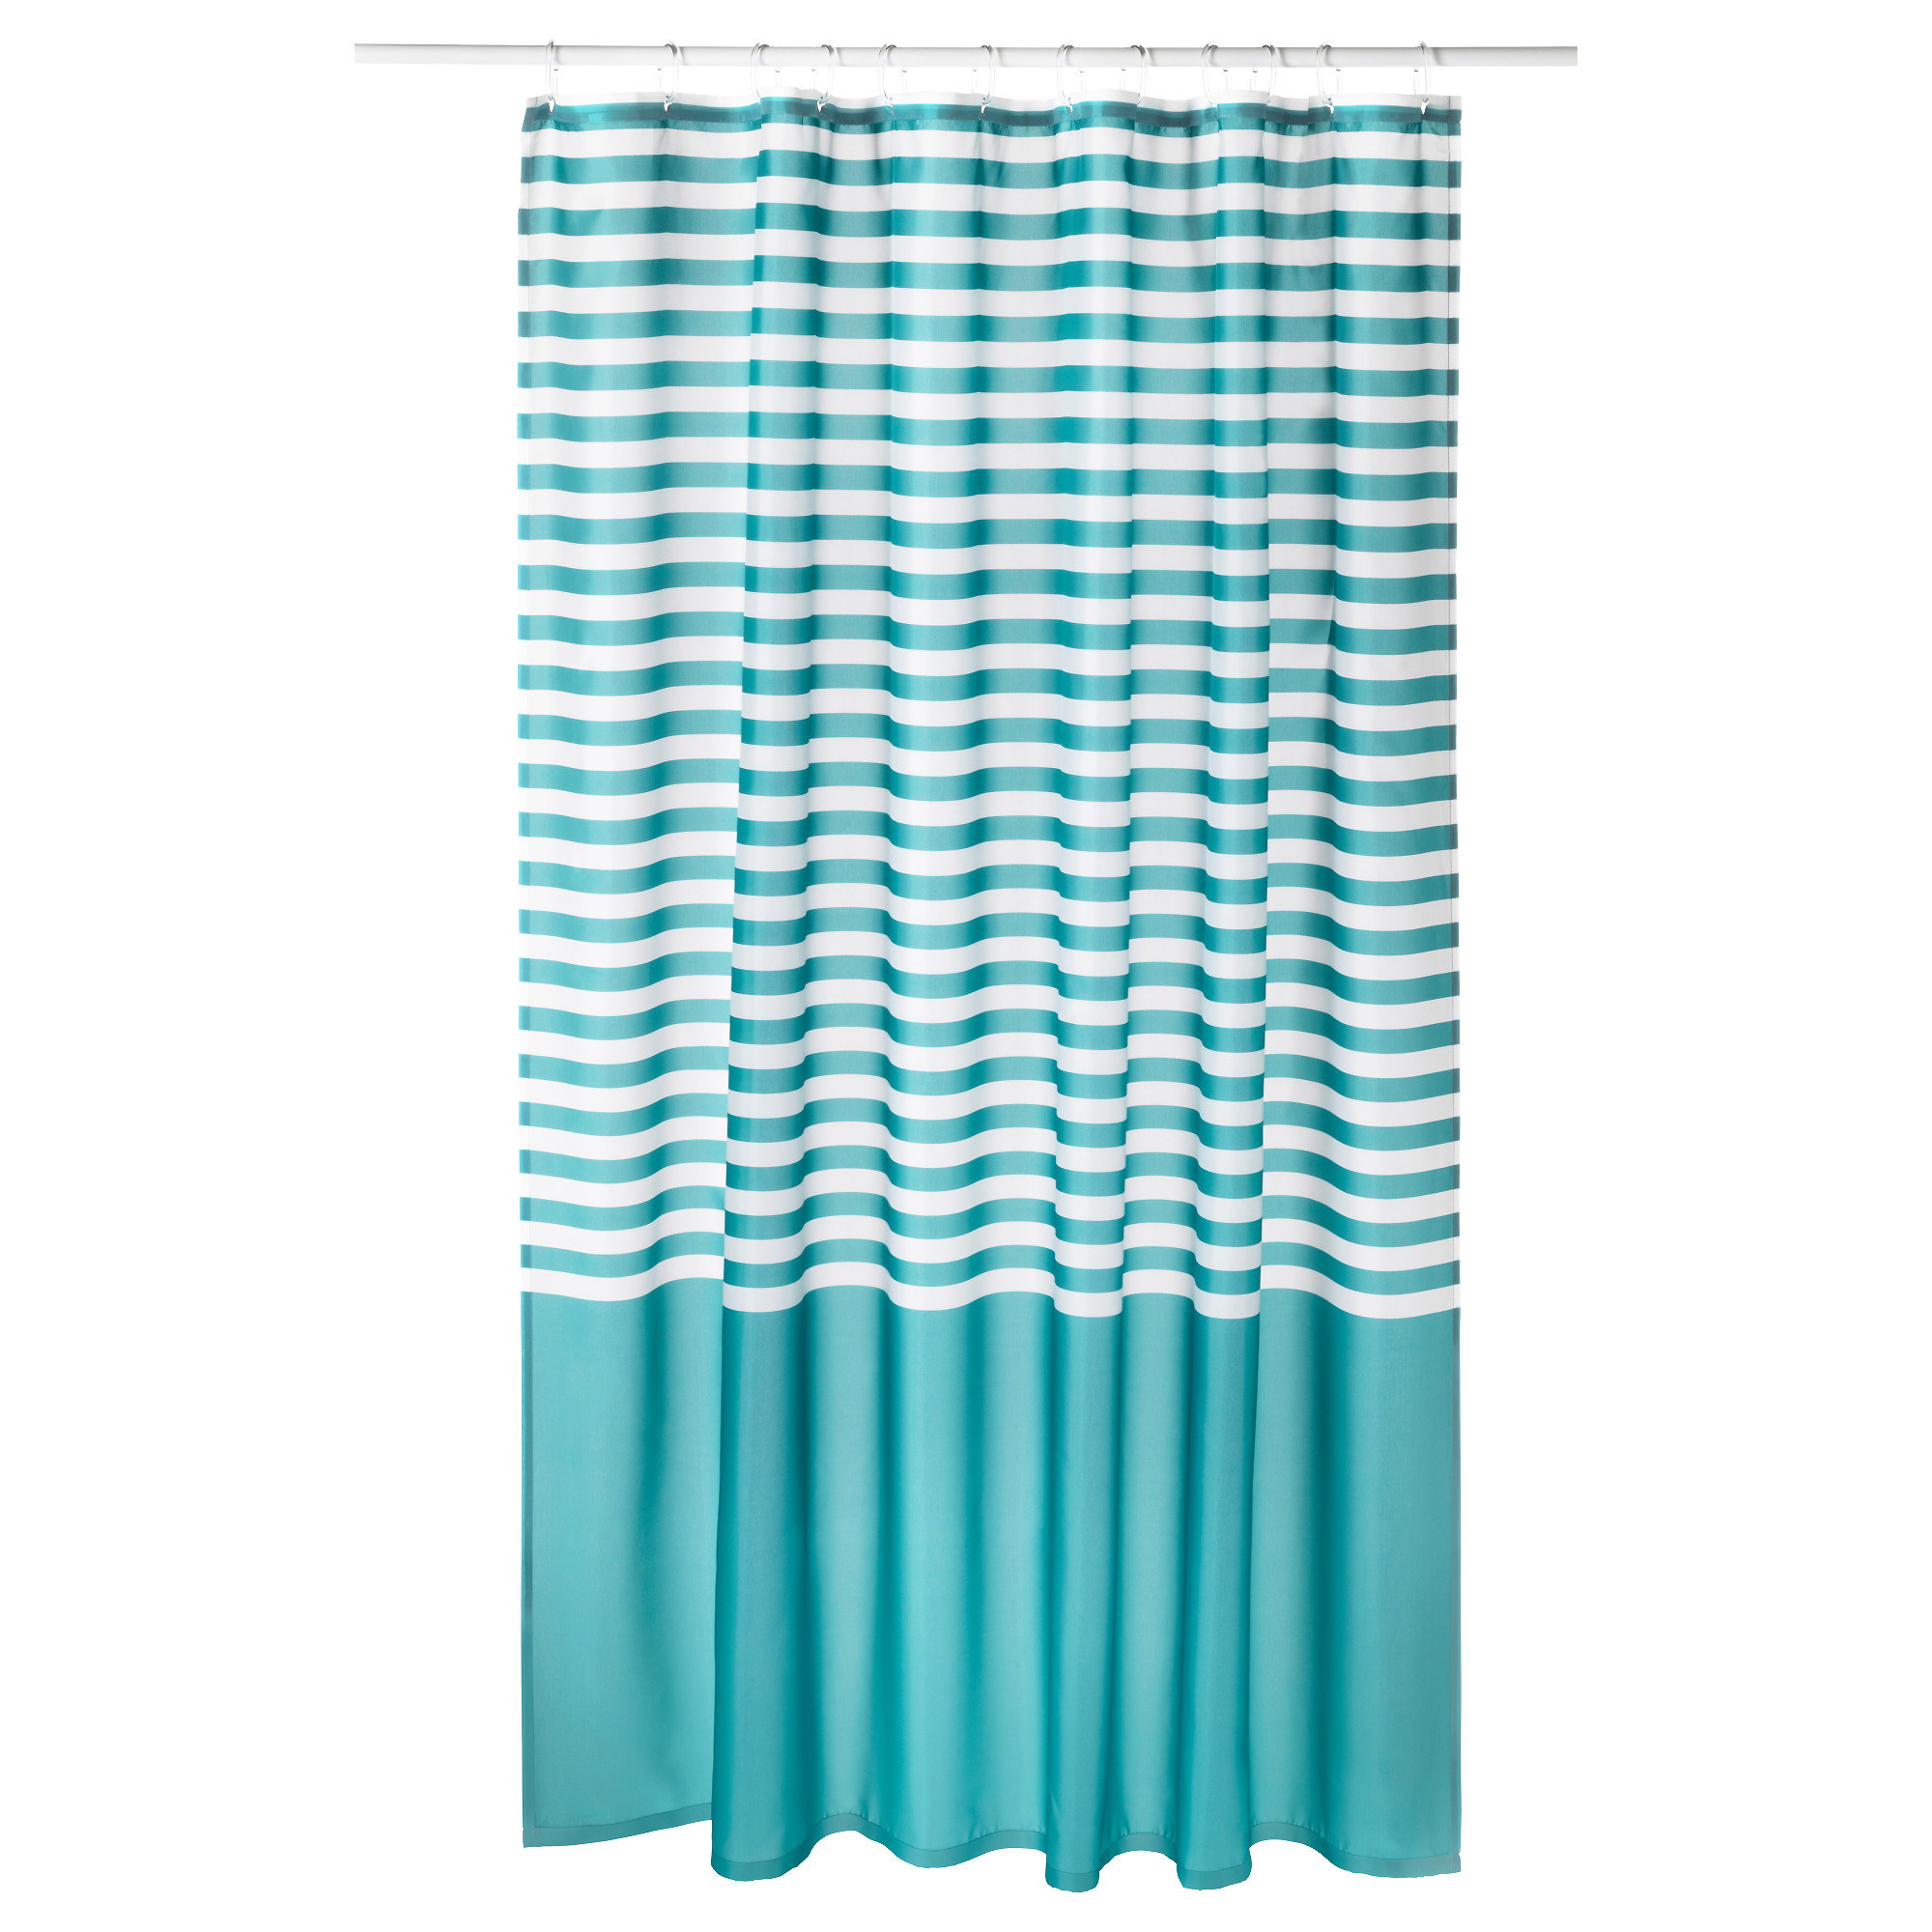 Ikea Shower Curtain for Best Your Bathroom Decoration: Ikea Shower Curtain | 36 Inch Shower Curtain | 72×96 Shower Curtain